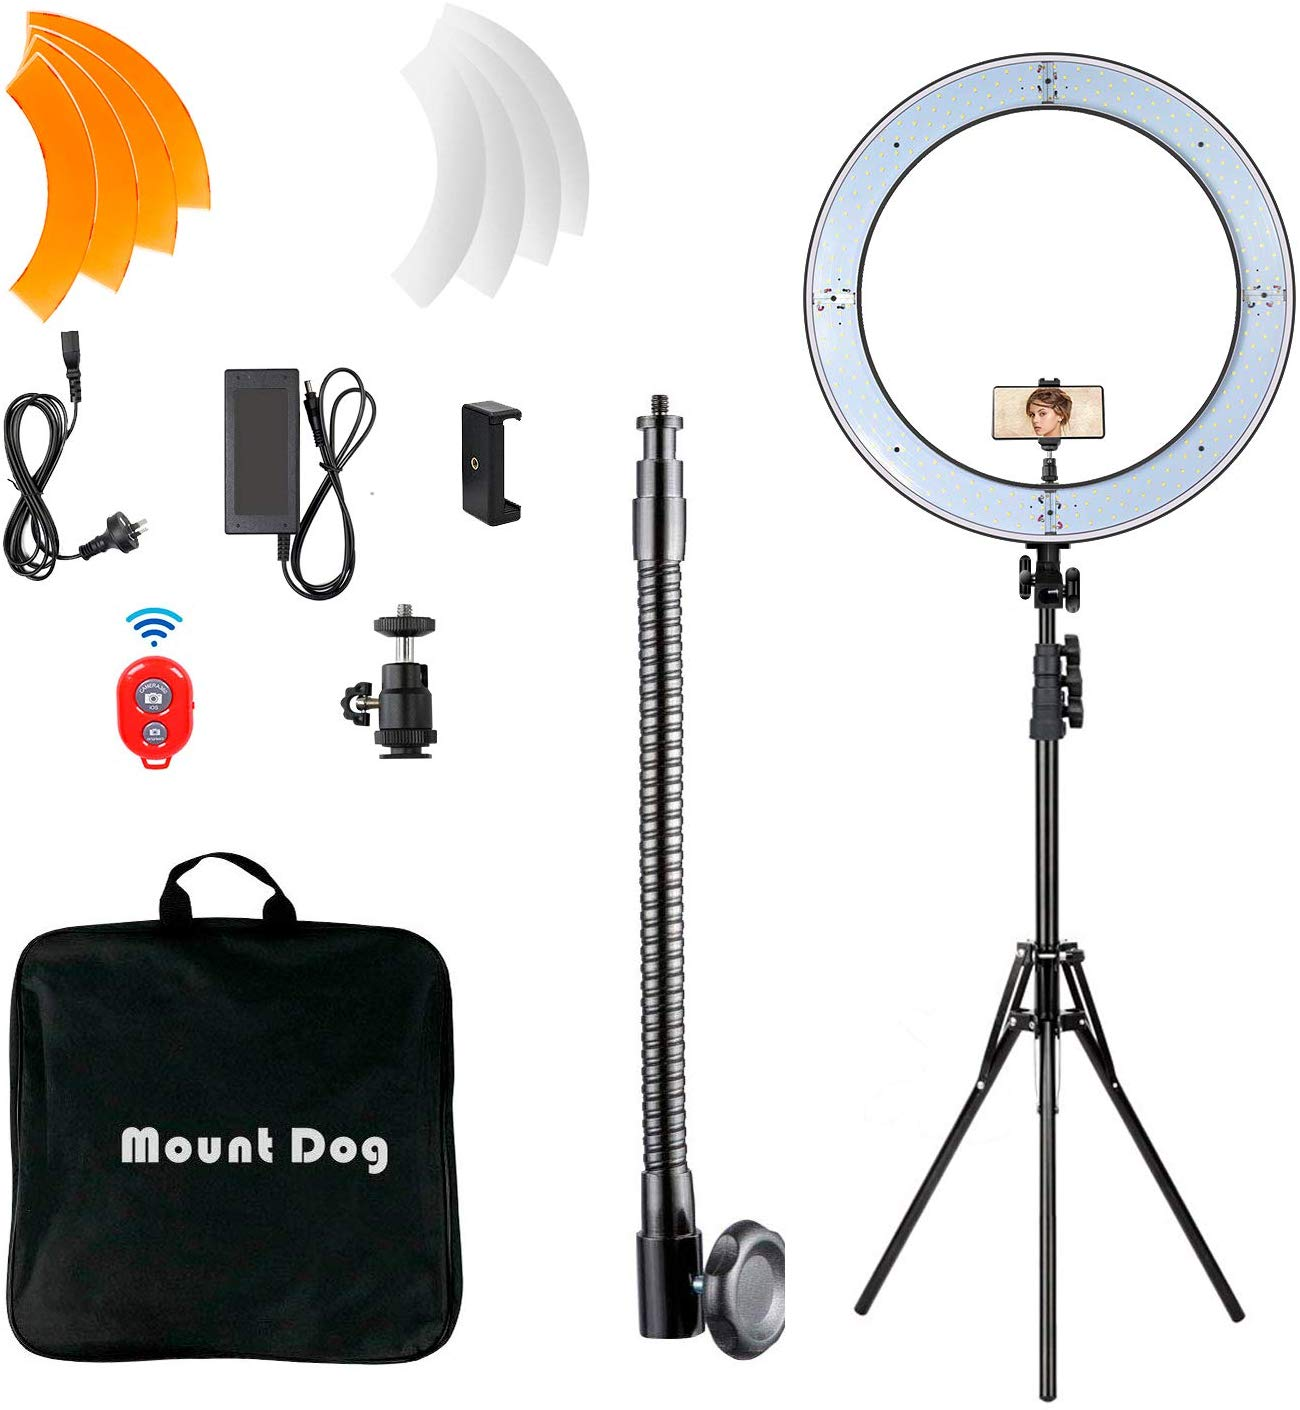 "Mountdog 18"" ring light"